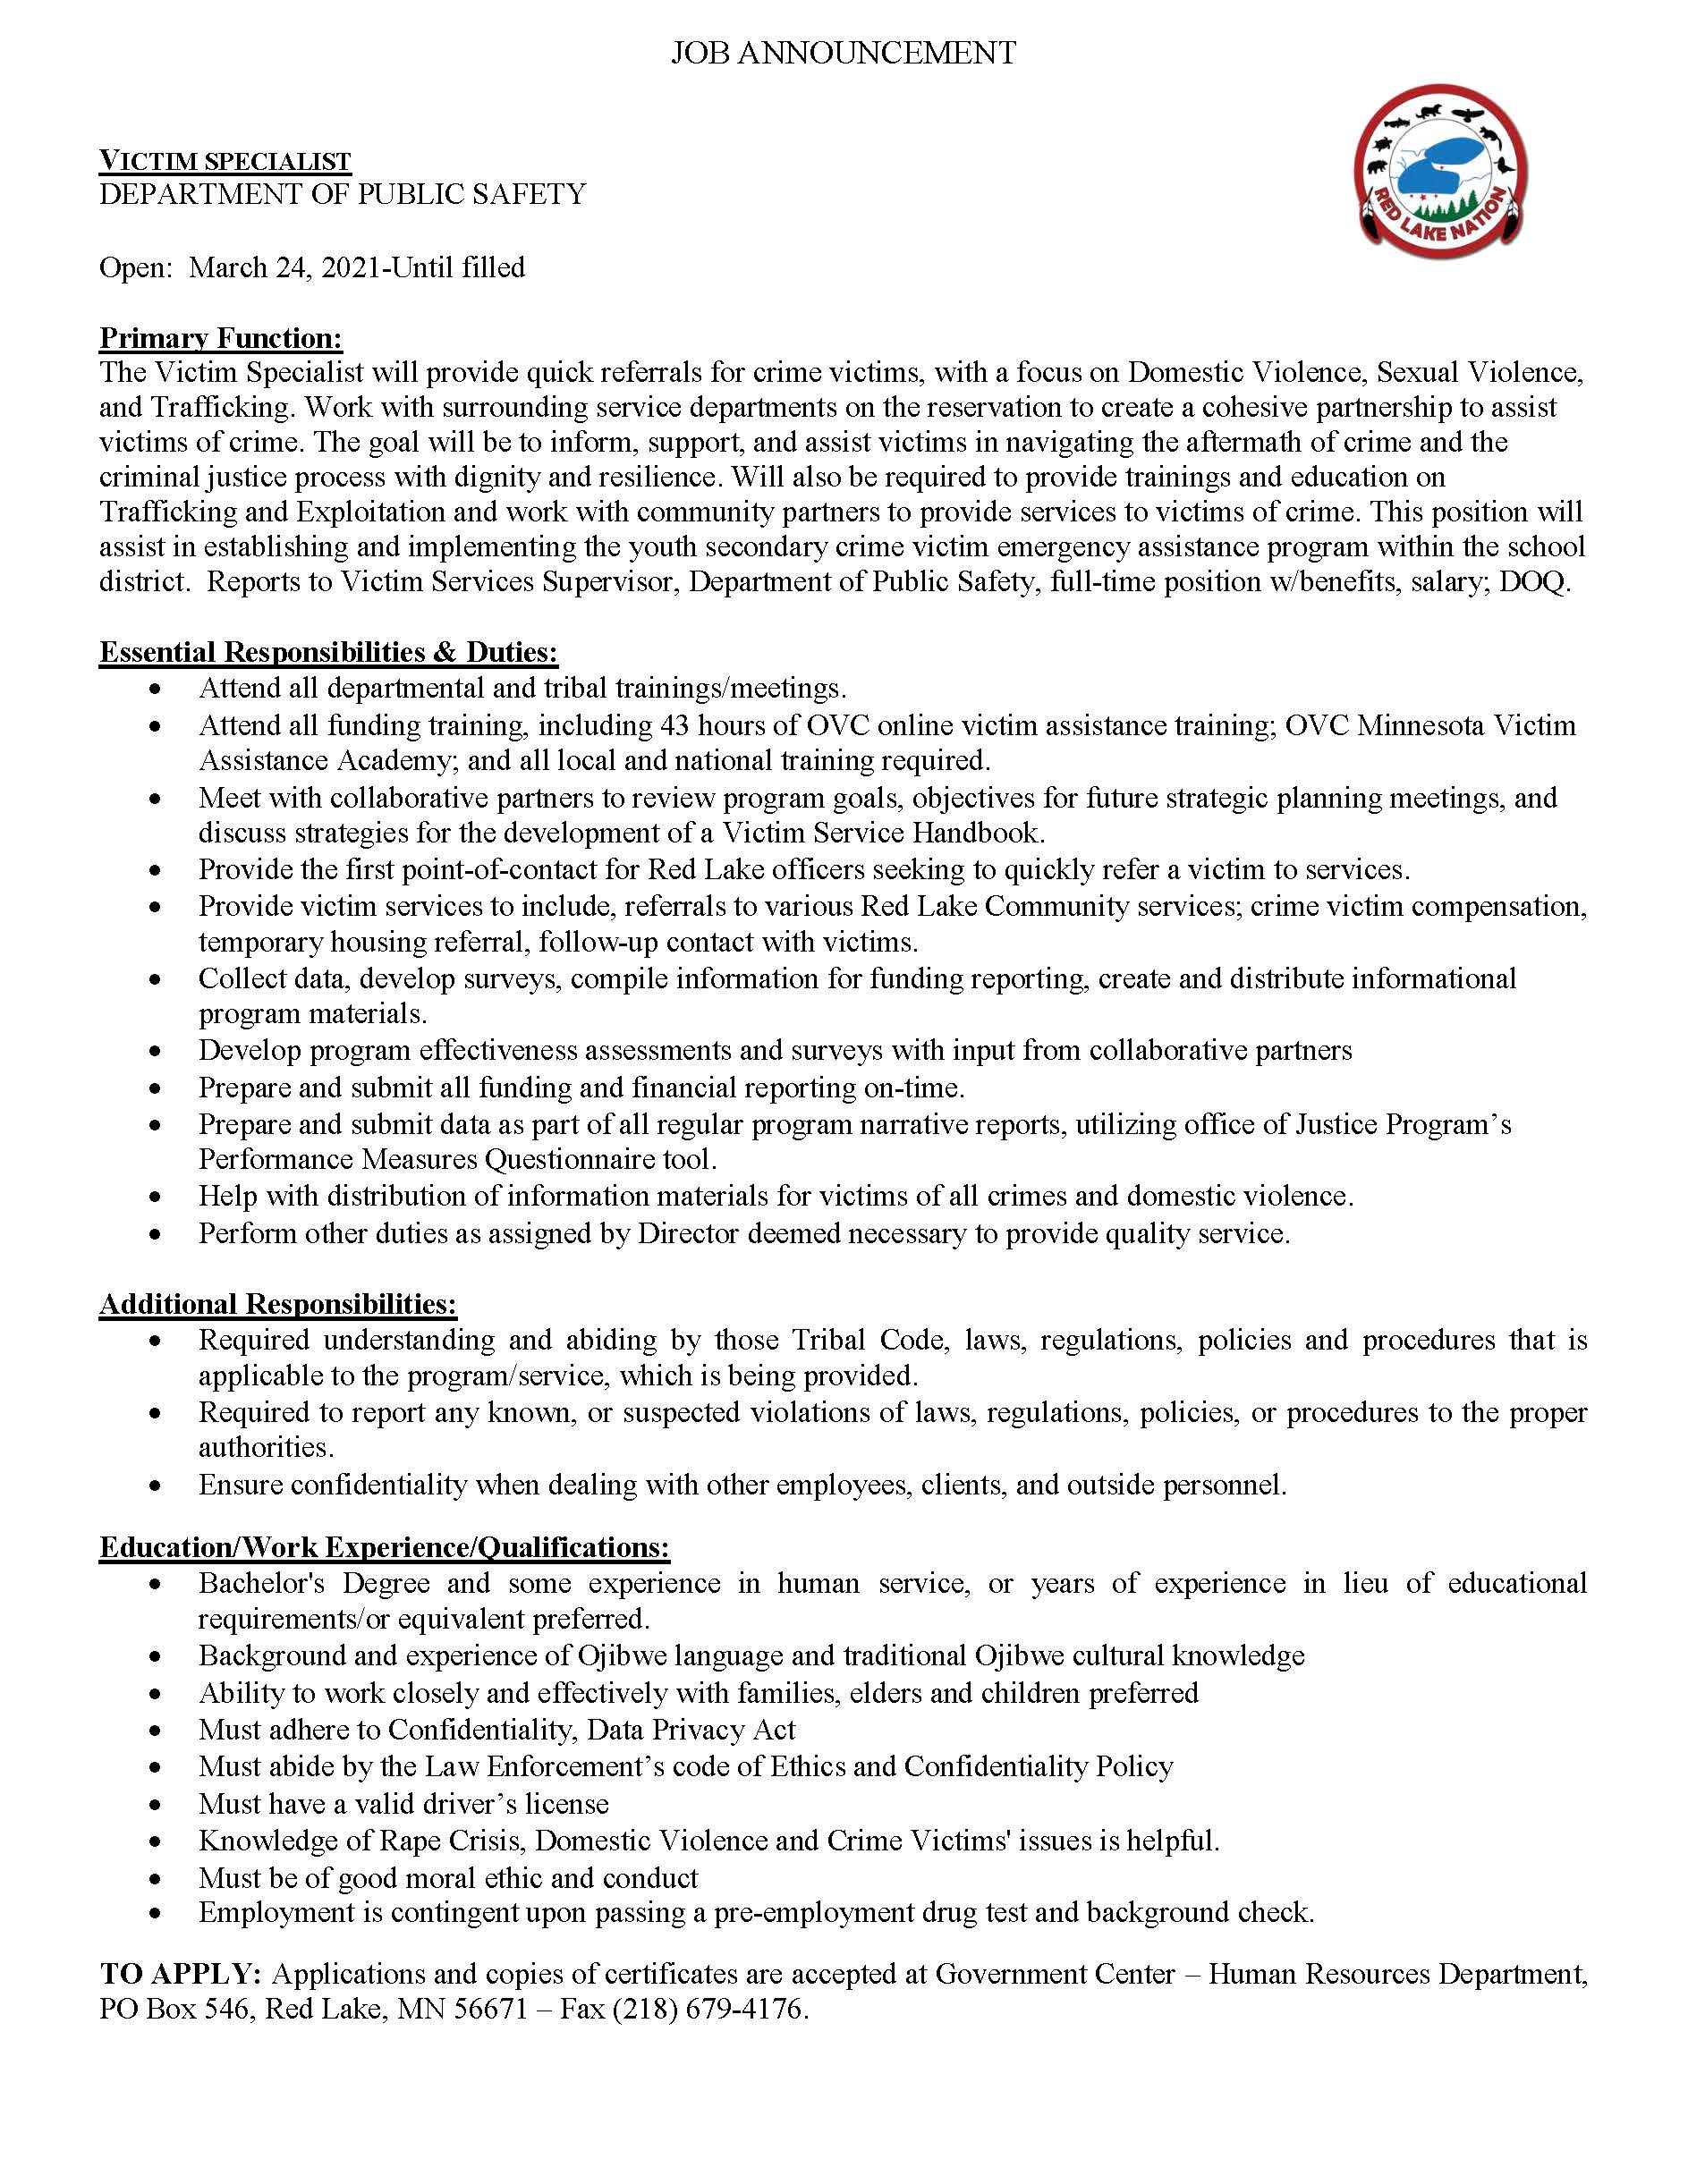 Victim Specialist-Department of Public Safety- Job Posting 3-23-2021